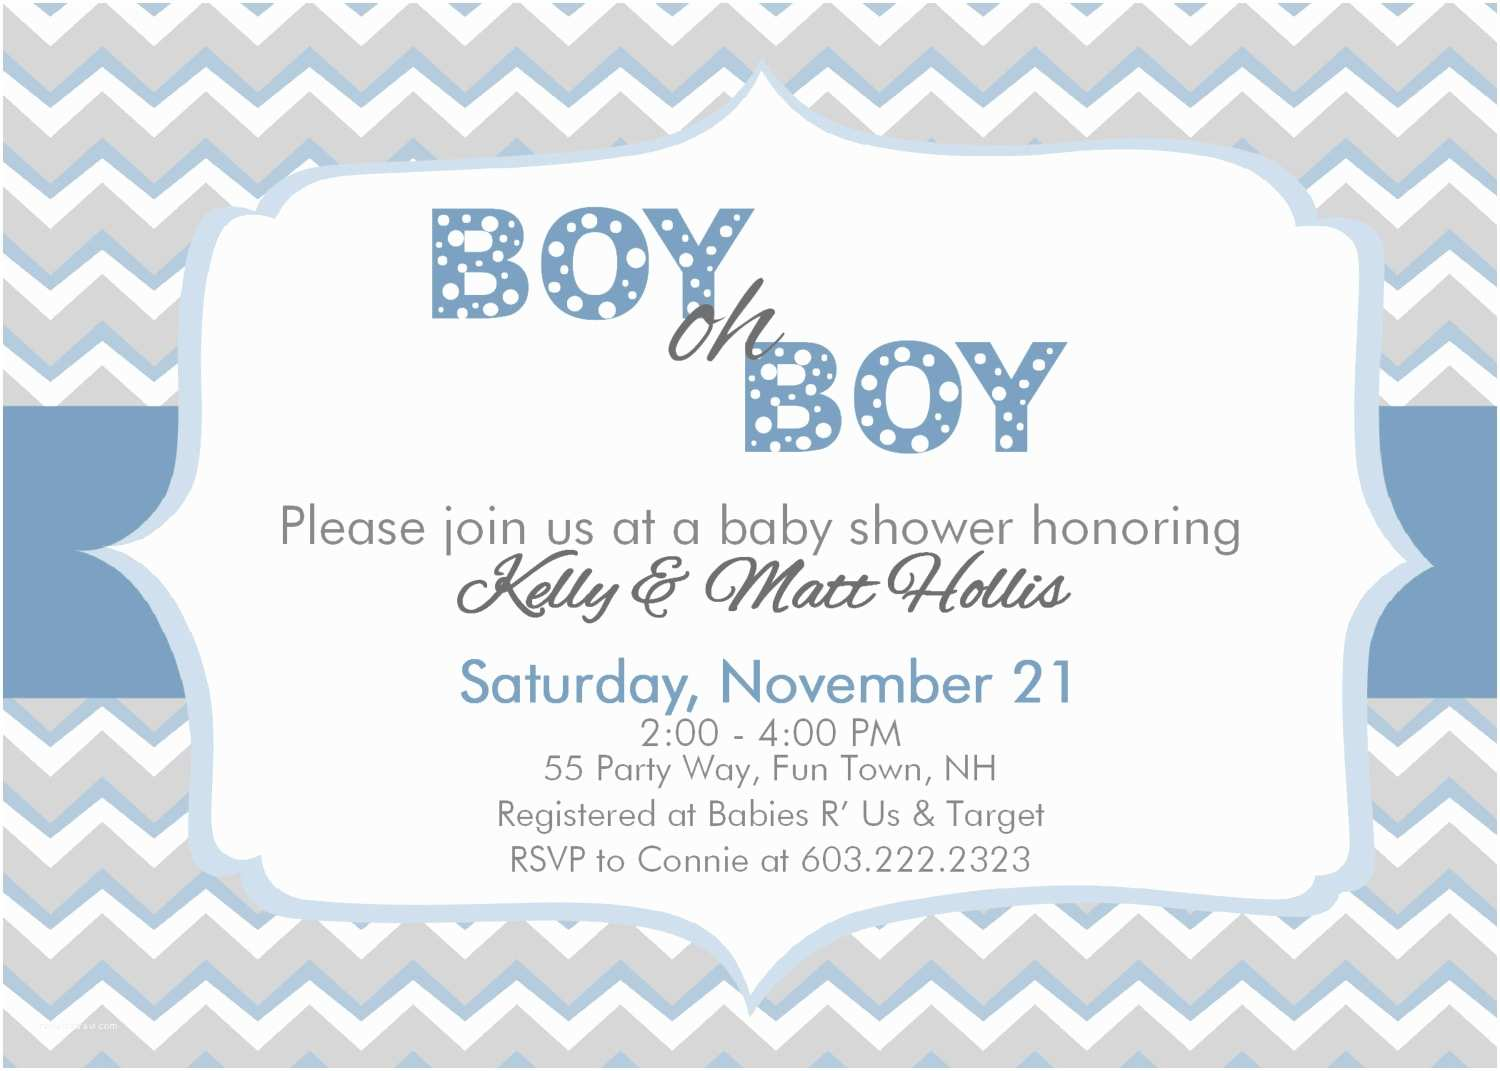 Boy Baby Shower Invitations Chevron Baby Shower Invitation Boy Chevron Boy Oh Boy Baby